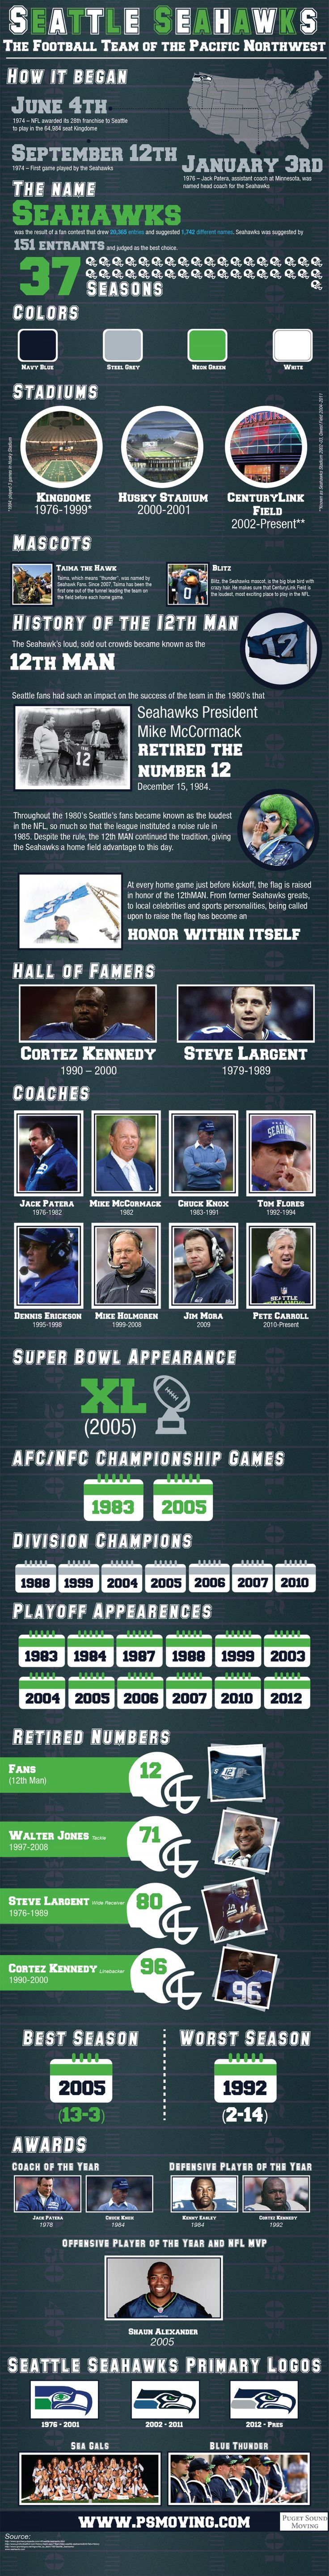 Seattle Seahawks Infographic